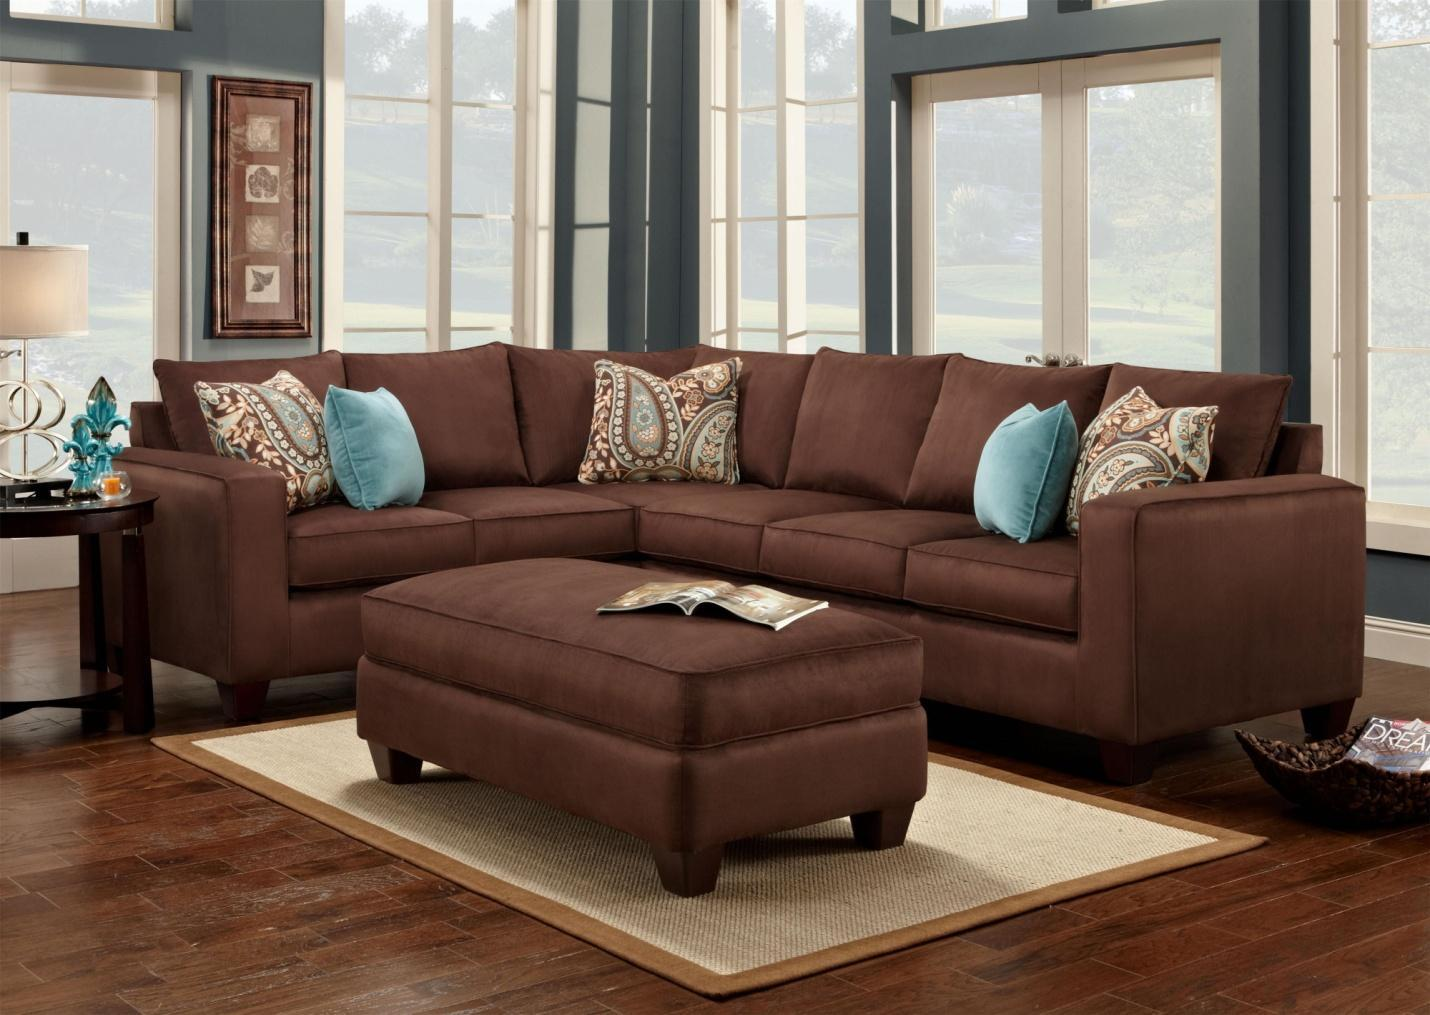 Turquoise is a great accent color to chocolate brown! #accent #pillows #sofa  | Brown sofa living room, Living room decor brown couch, Brown living room  decor